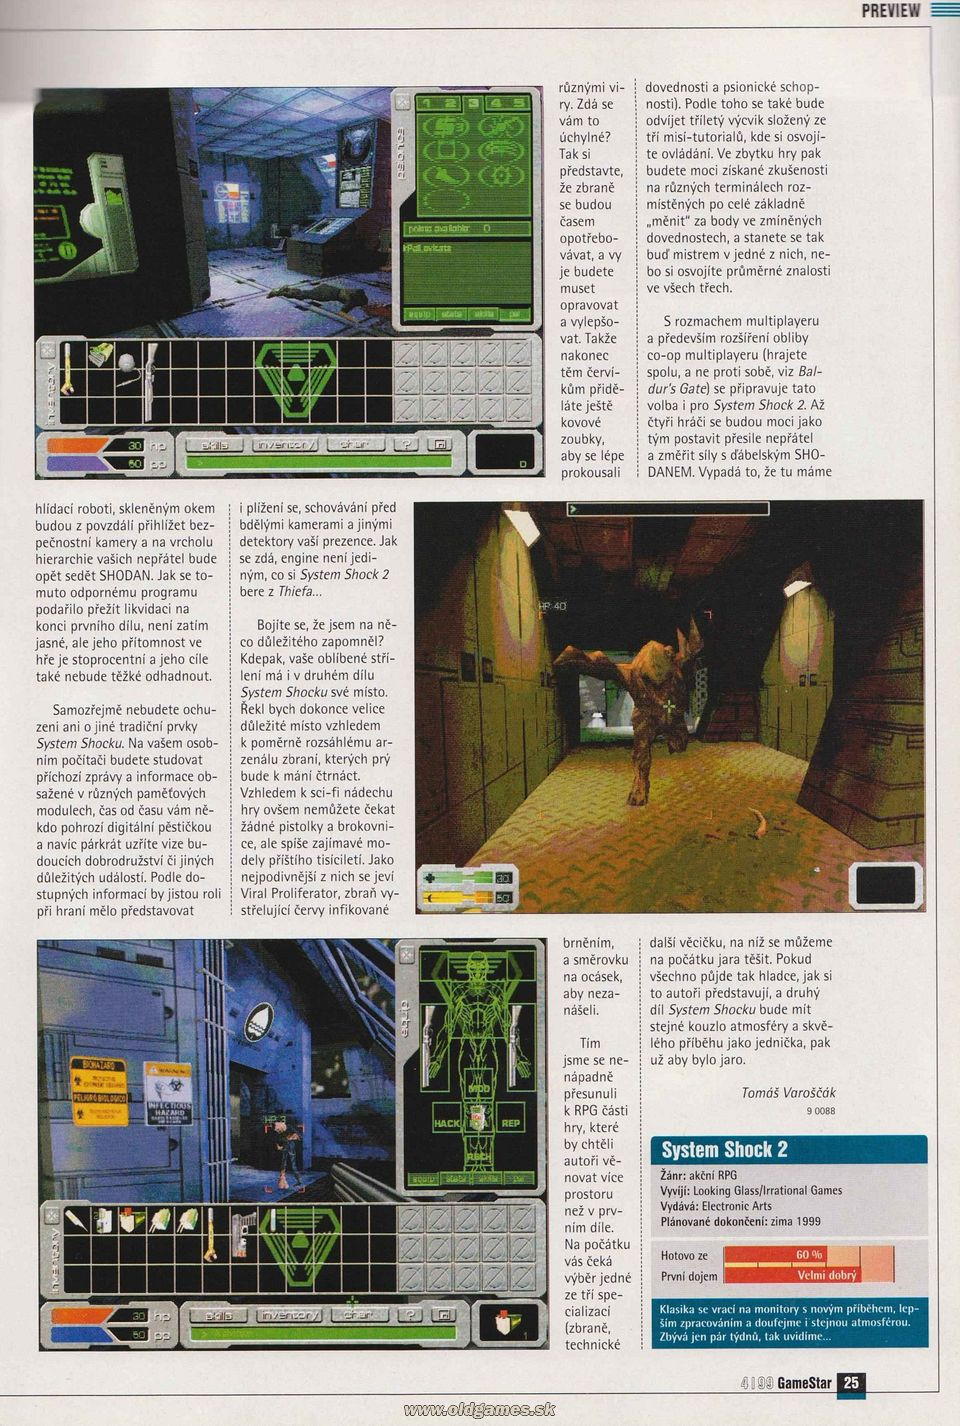 Preview: System Shock 2